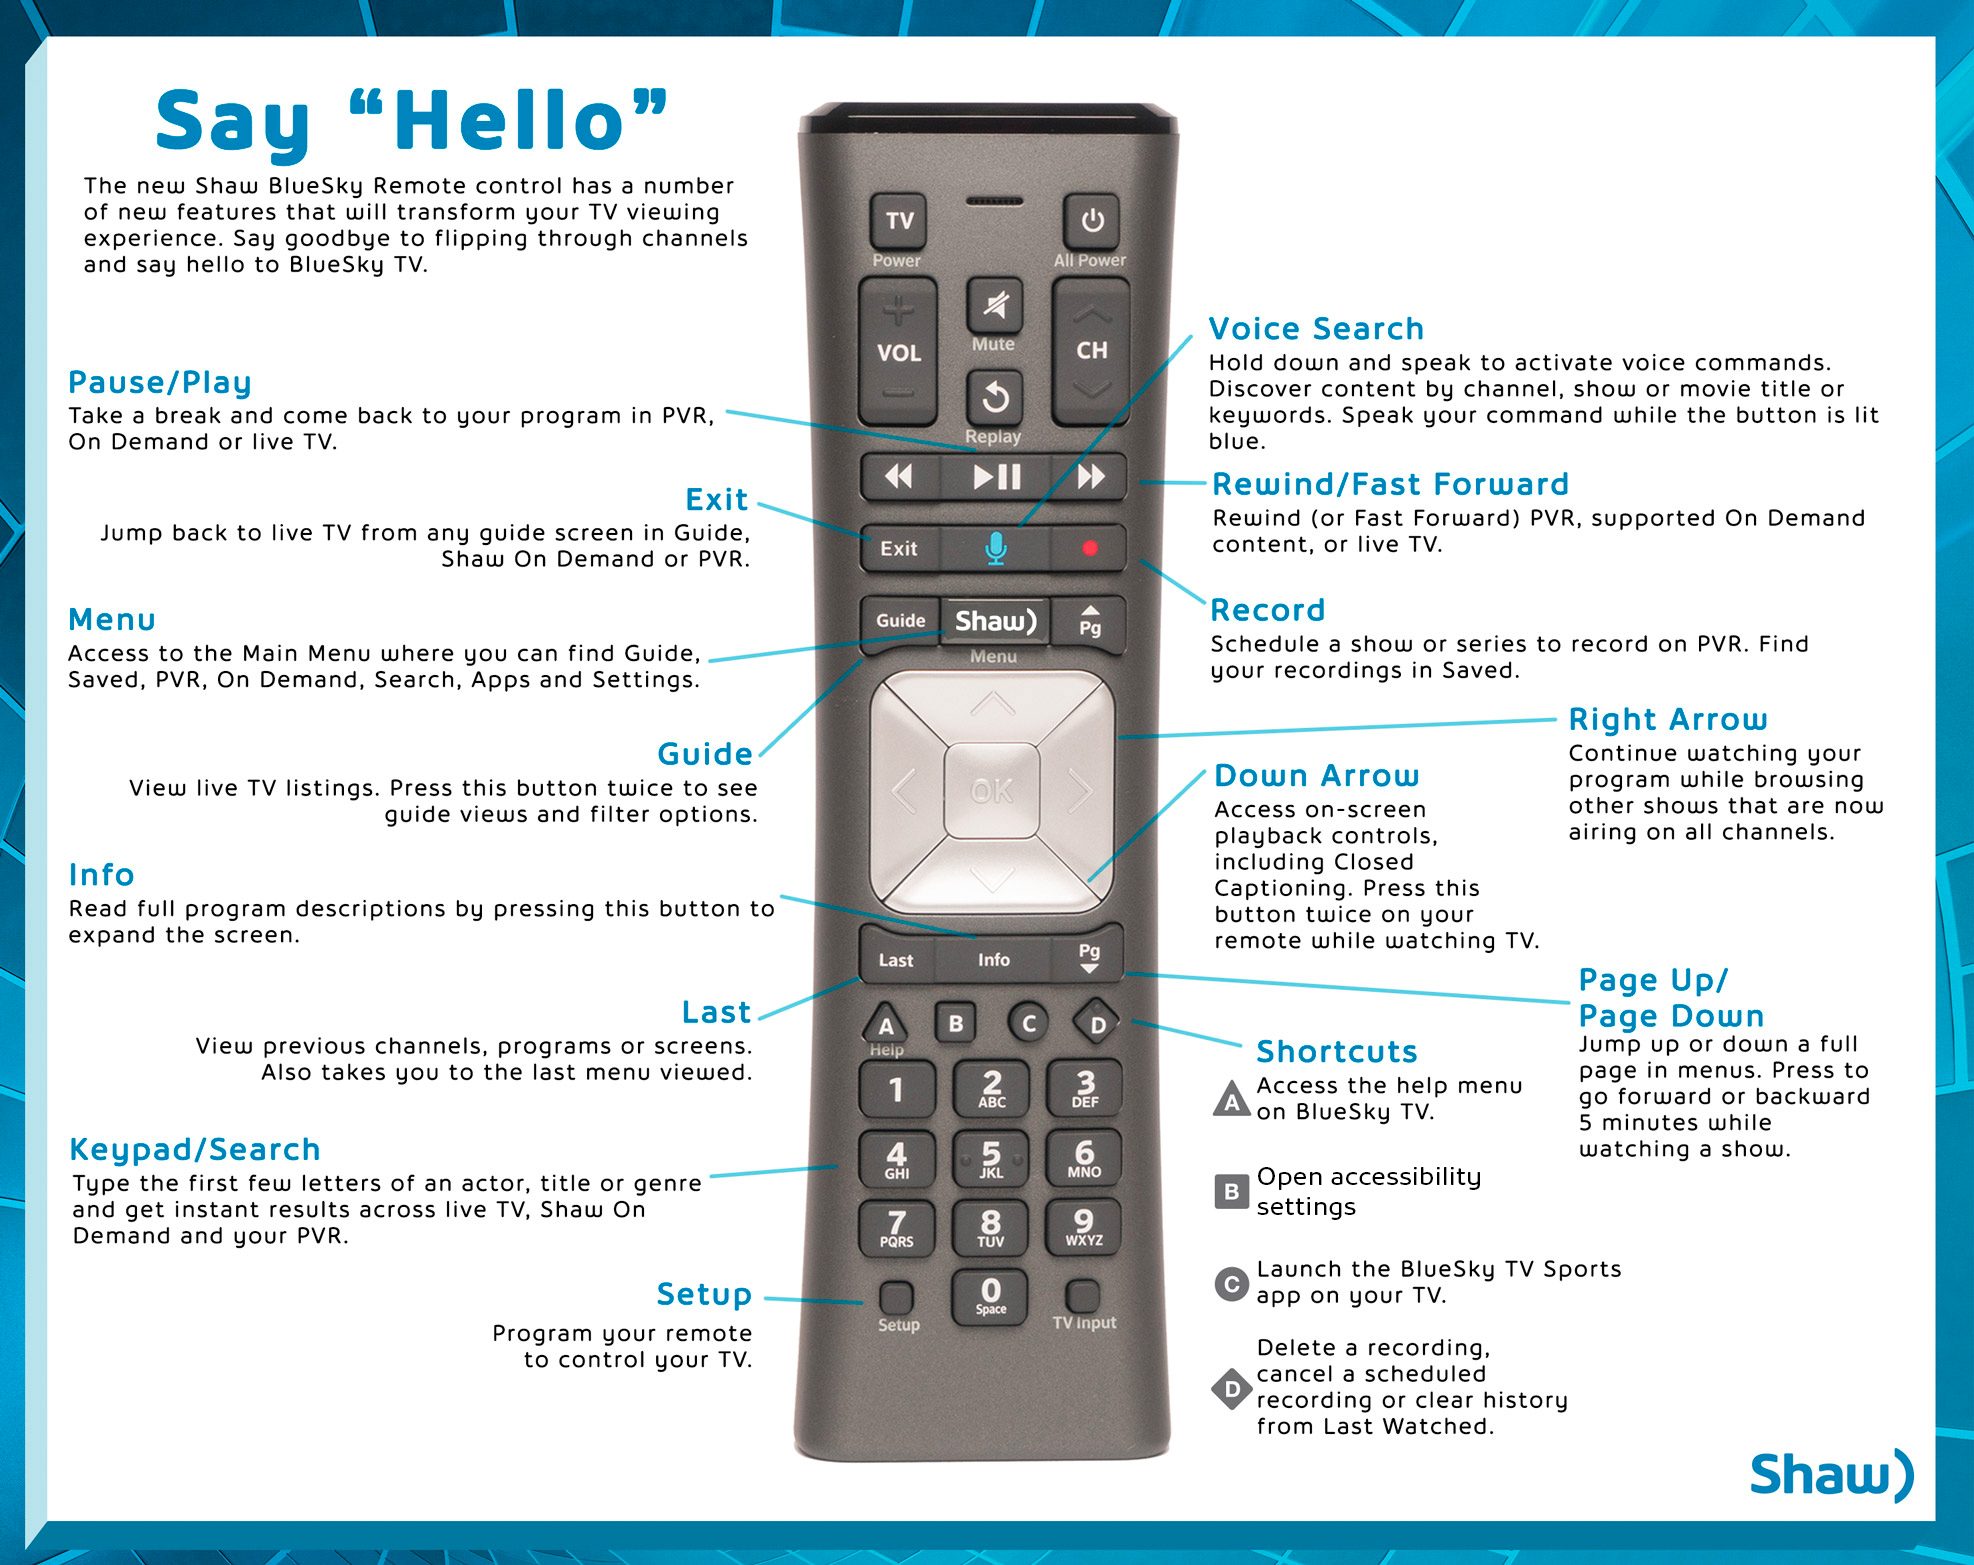 Say Hello to the BlueSky TV Remote